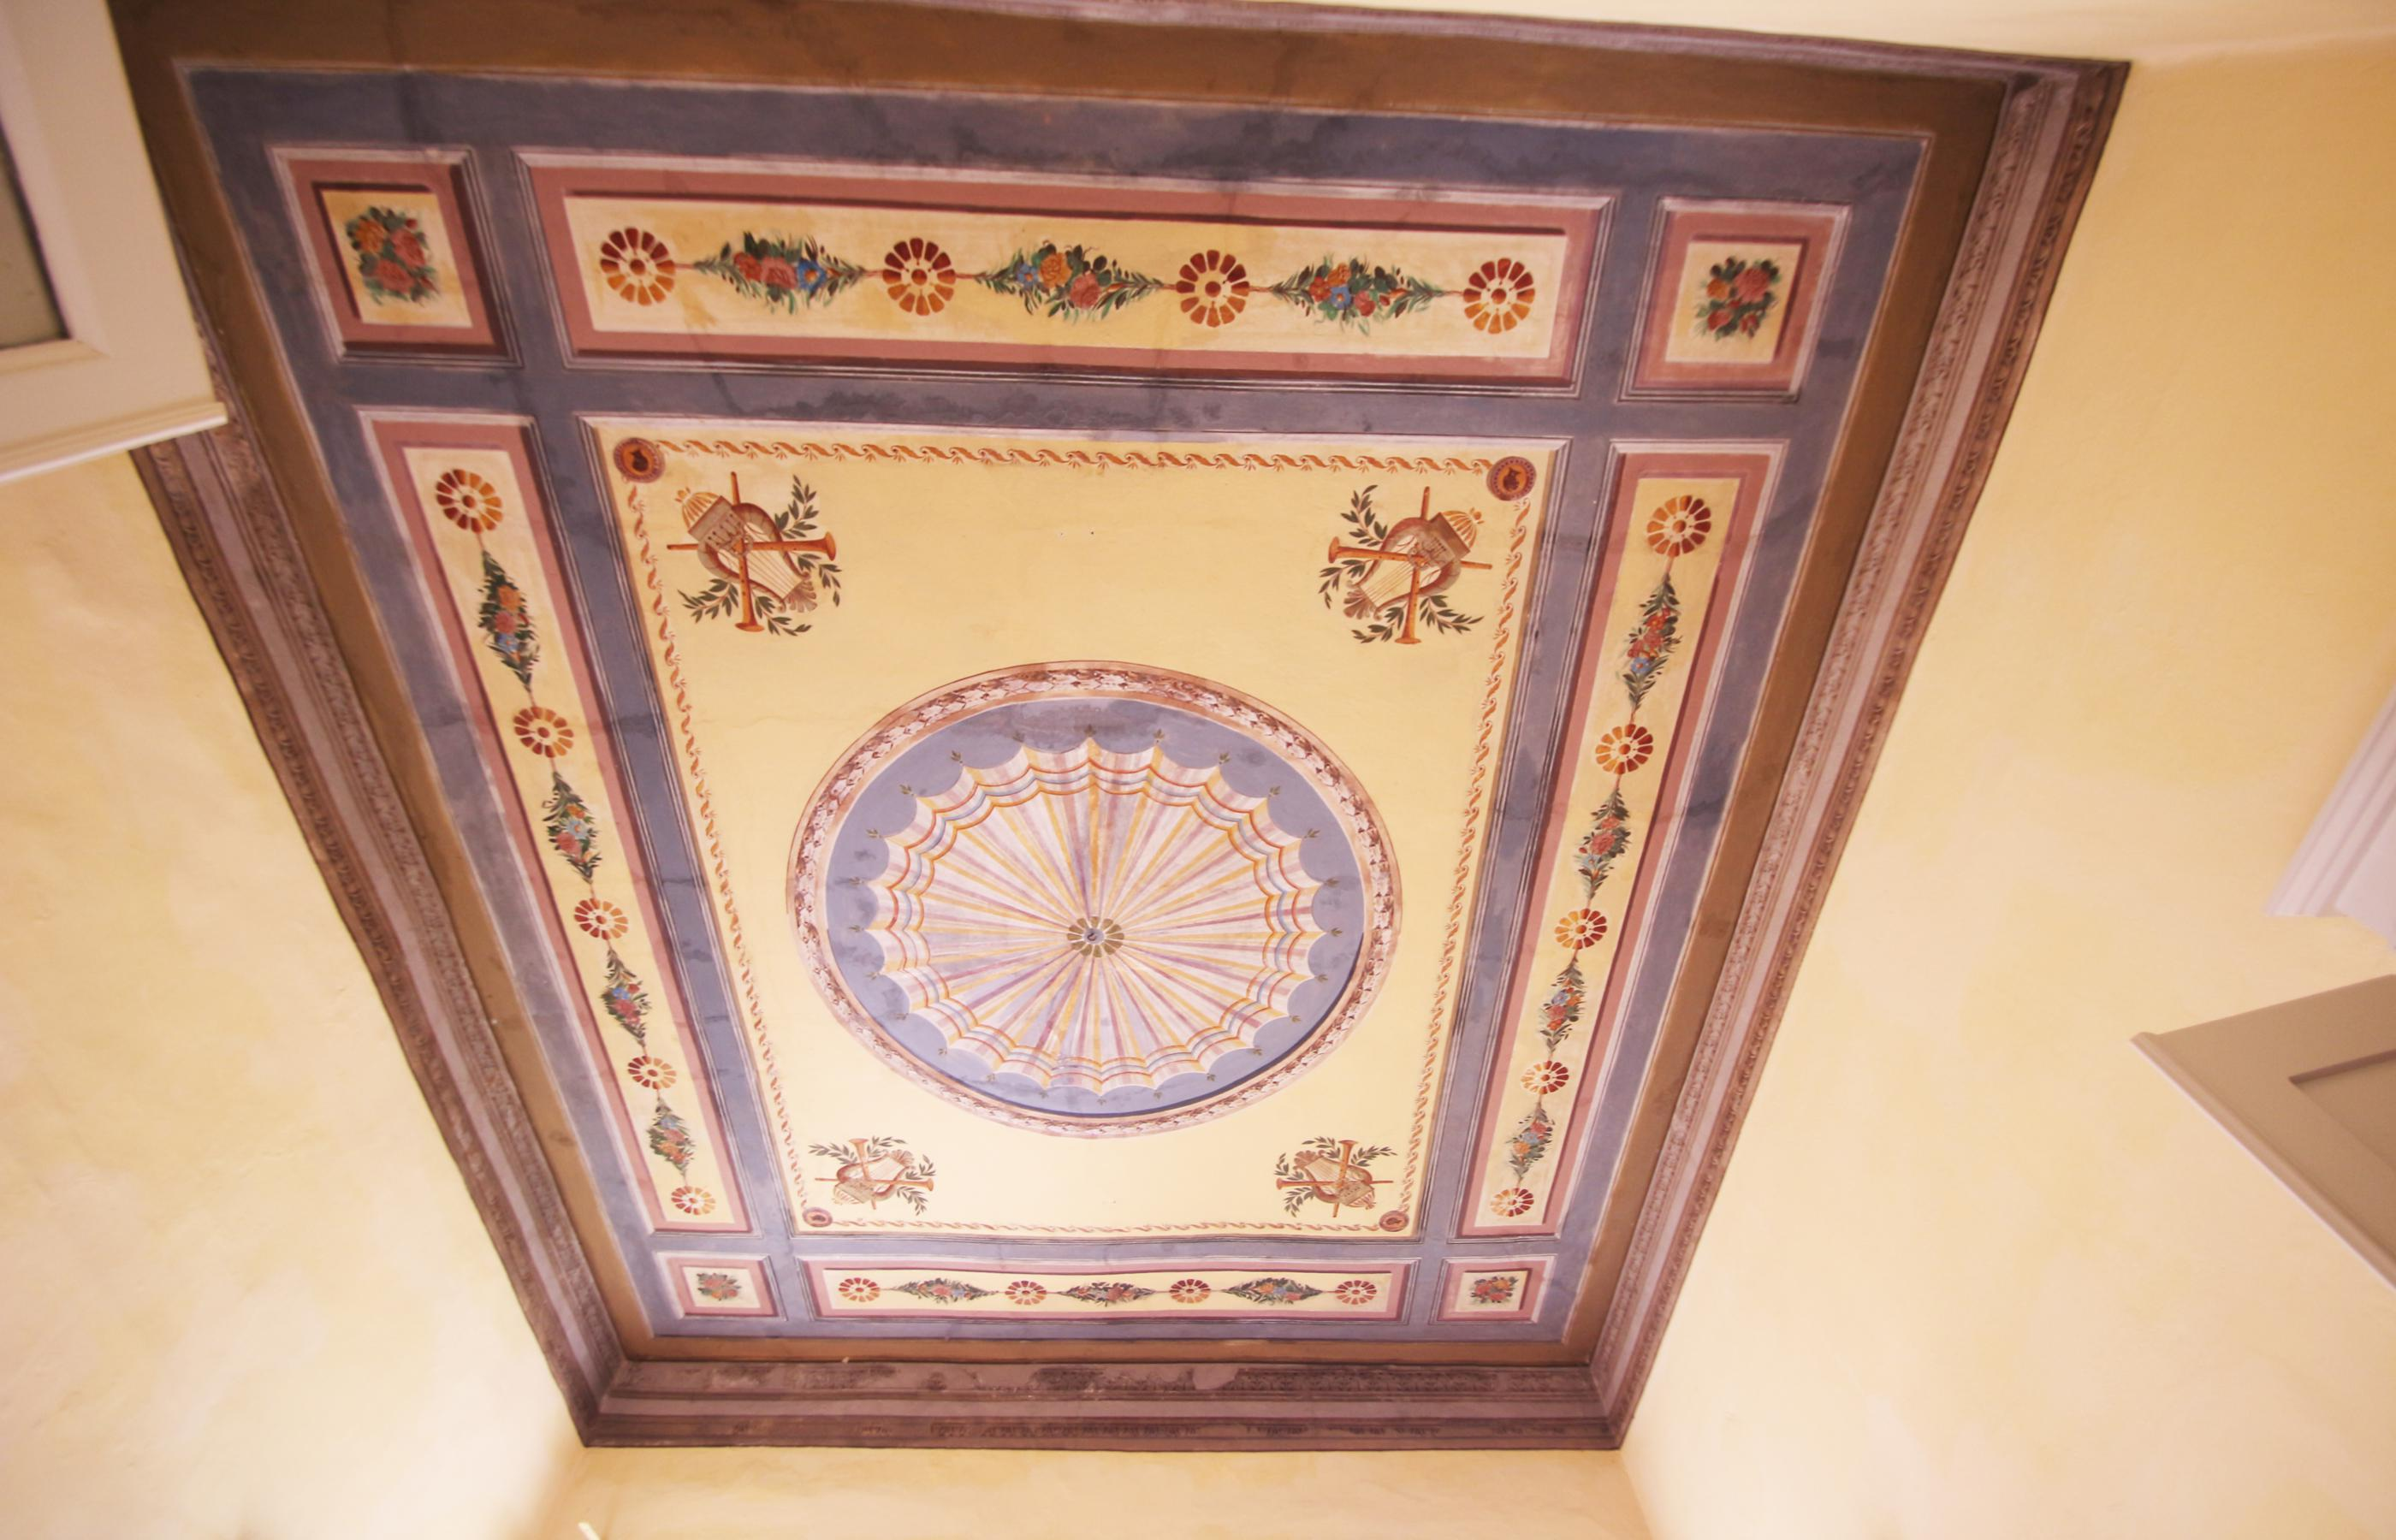 ORTA Elegant apartment with painted ceilings